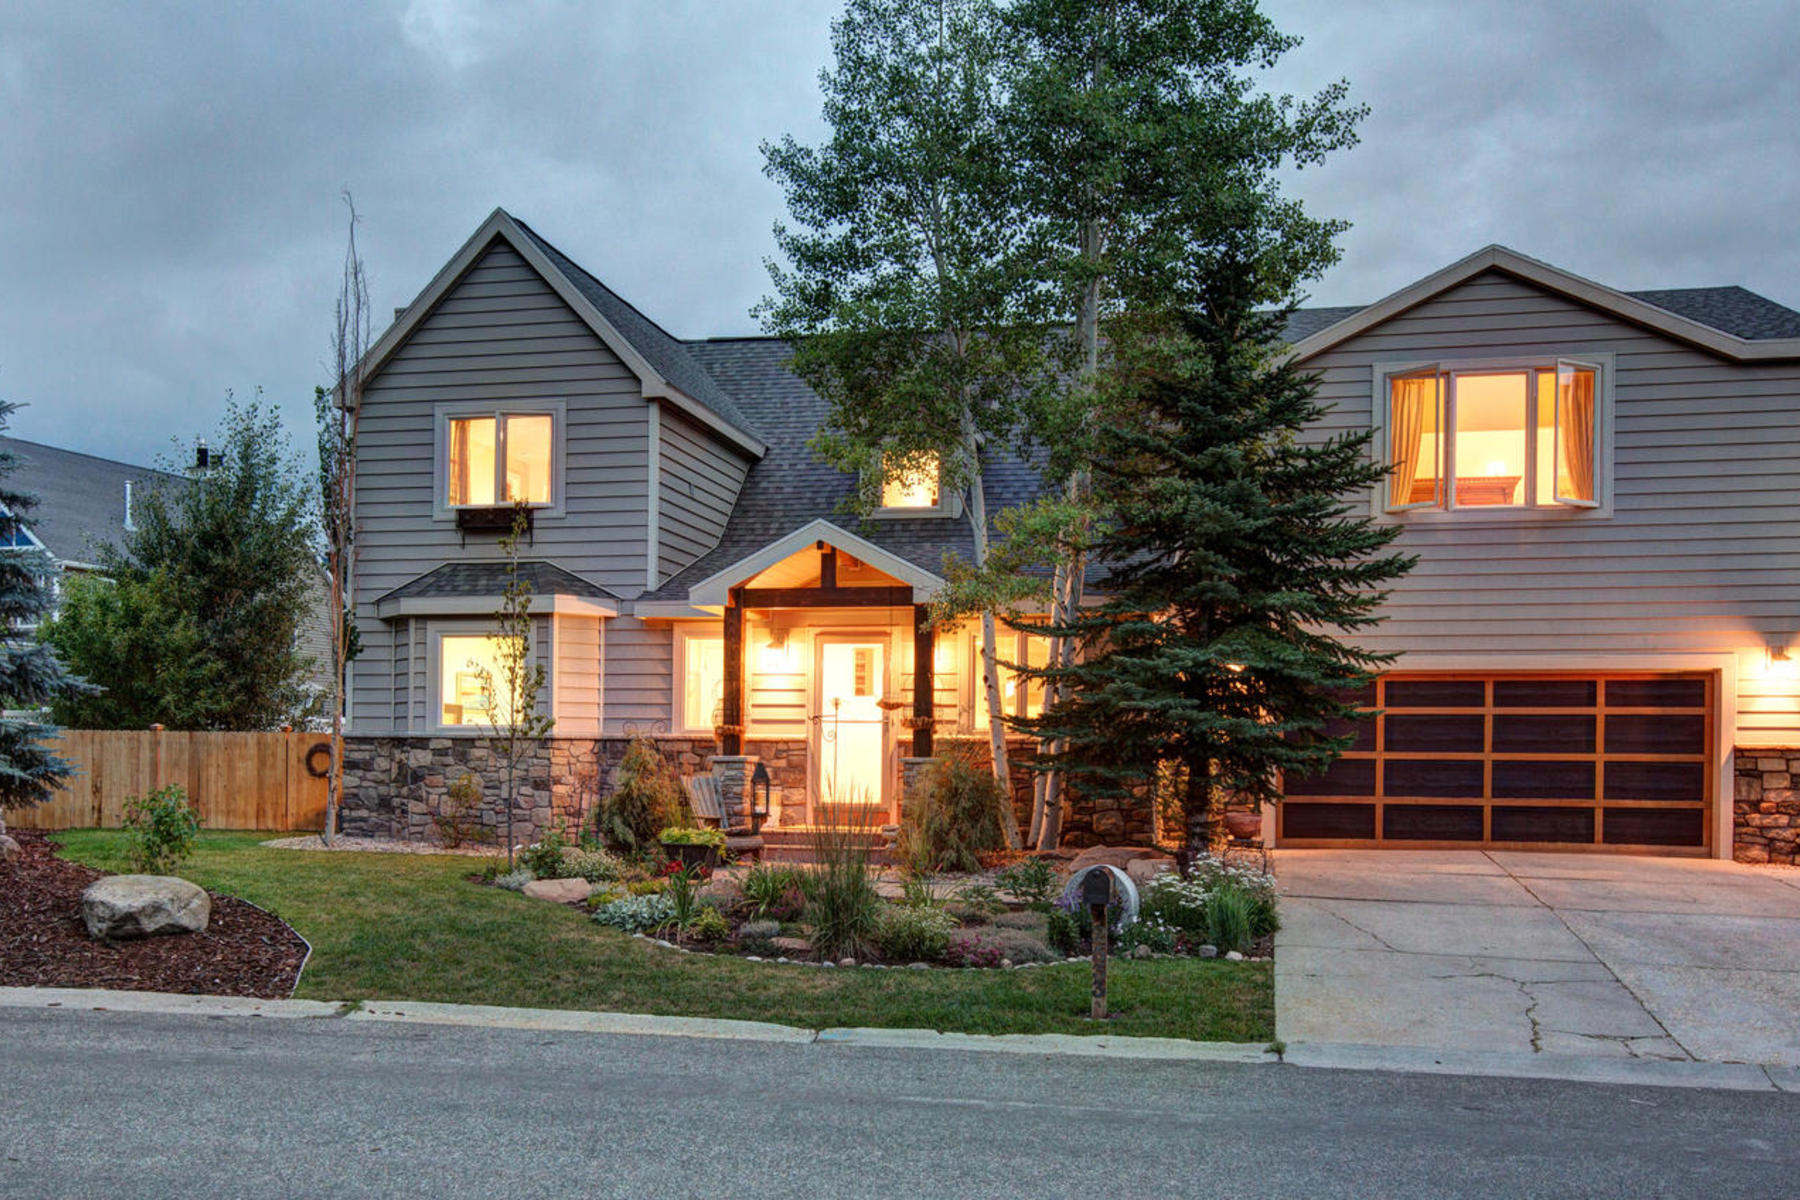 Single Family Home for Sale at Gorgeous Remodel With In-Town Location 2533 Geronimo Ct Park City, Utah 84060 United States